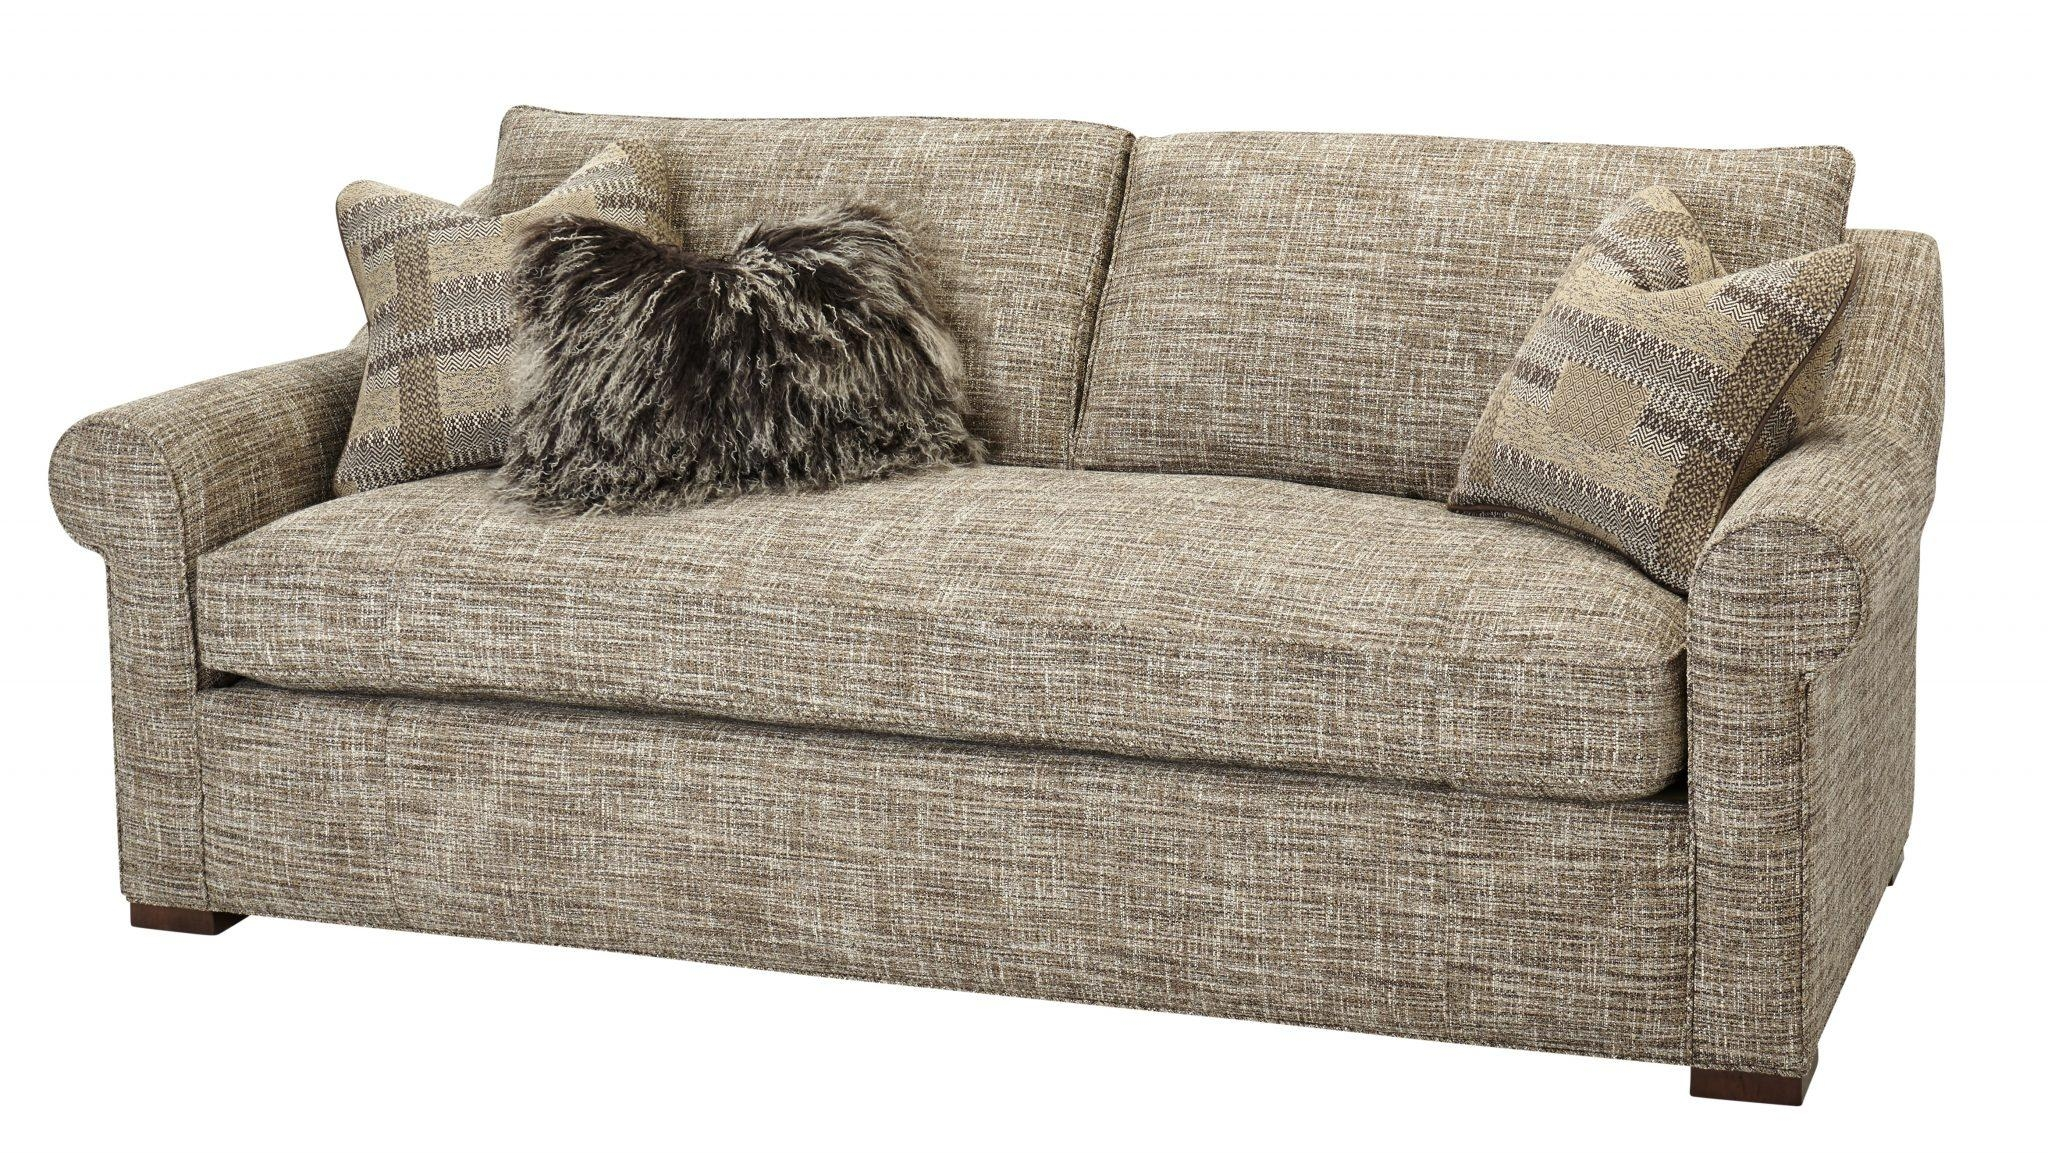 One Cushion Sofas – Massoud Furniture For Bench Cushion Sofas (Image 14 of 20)